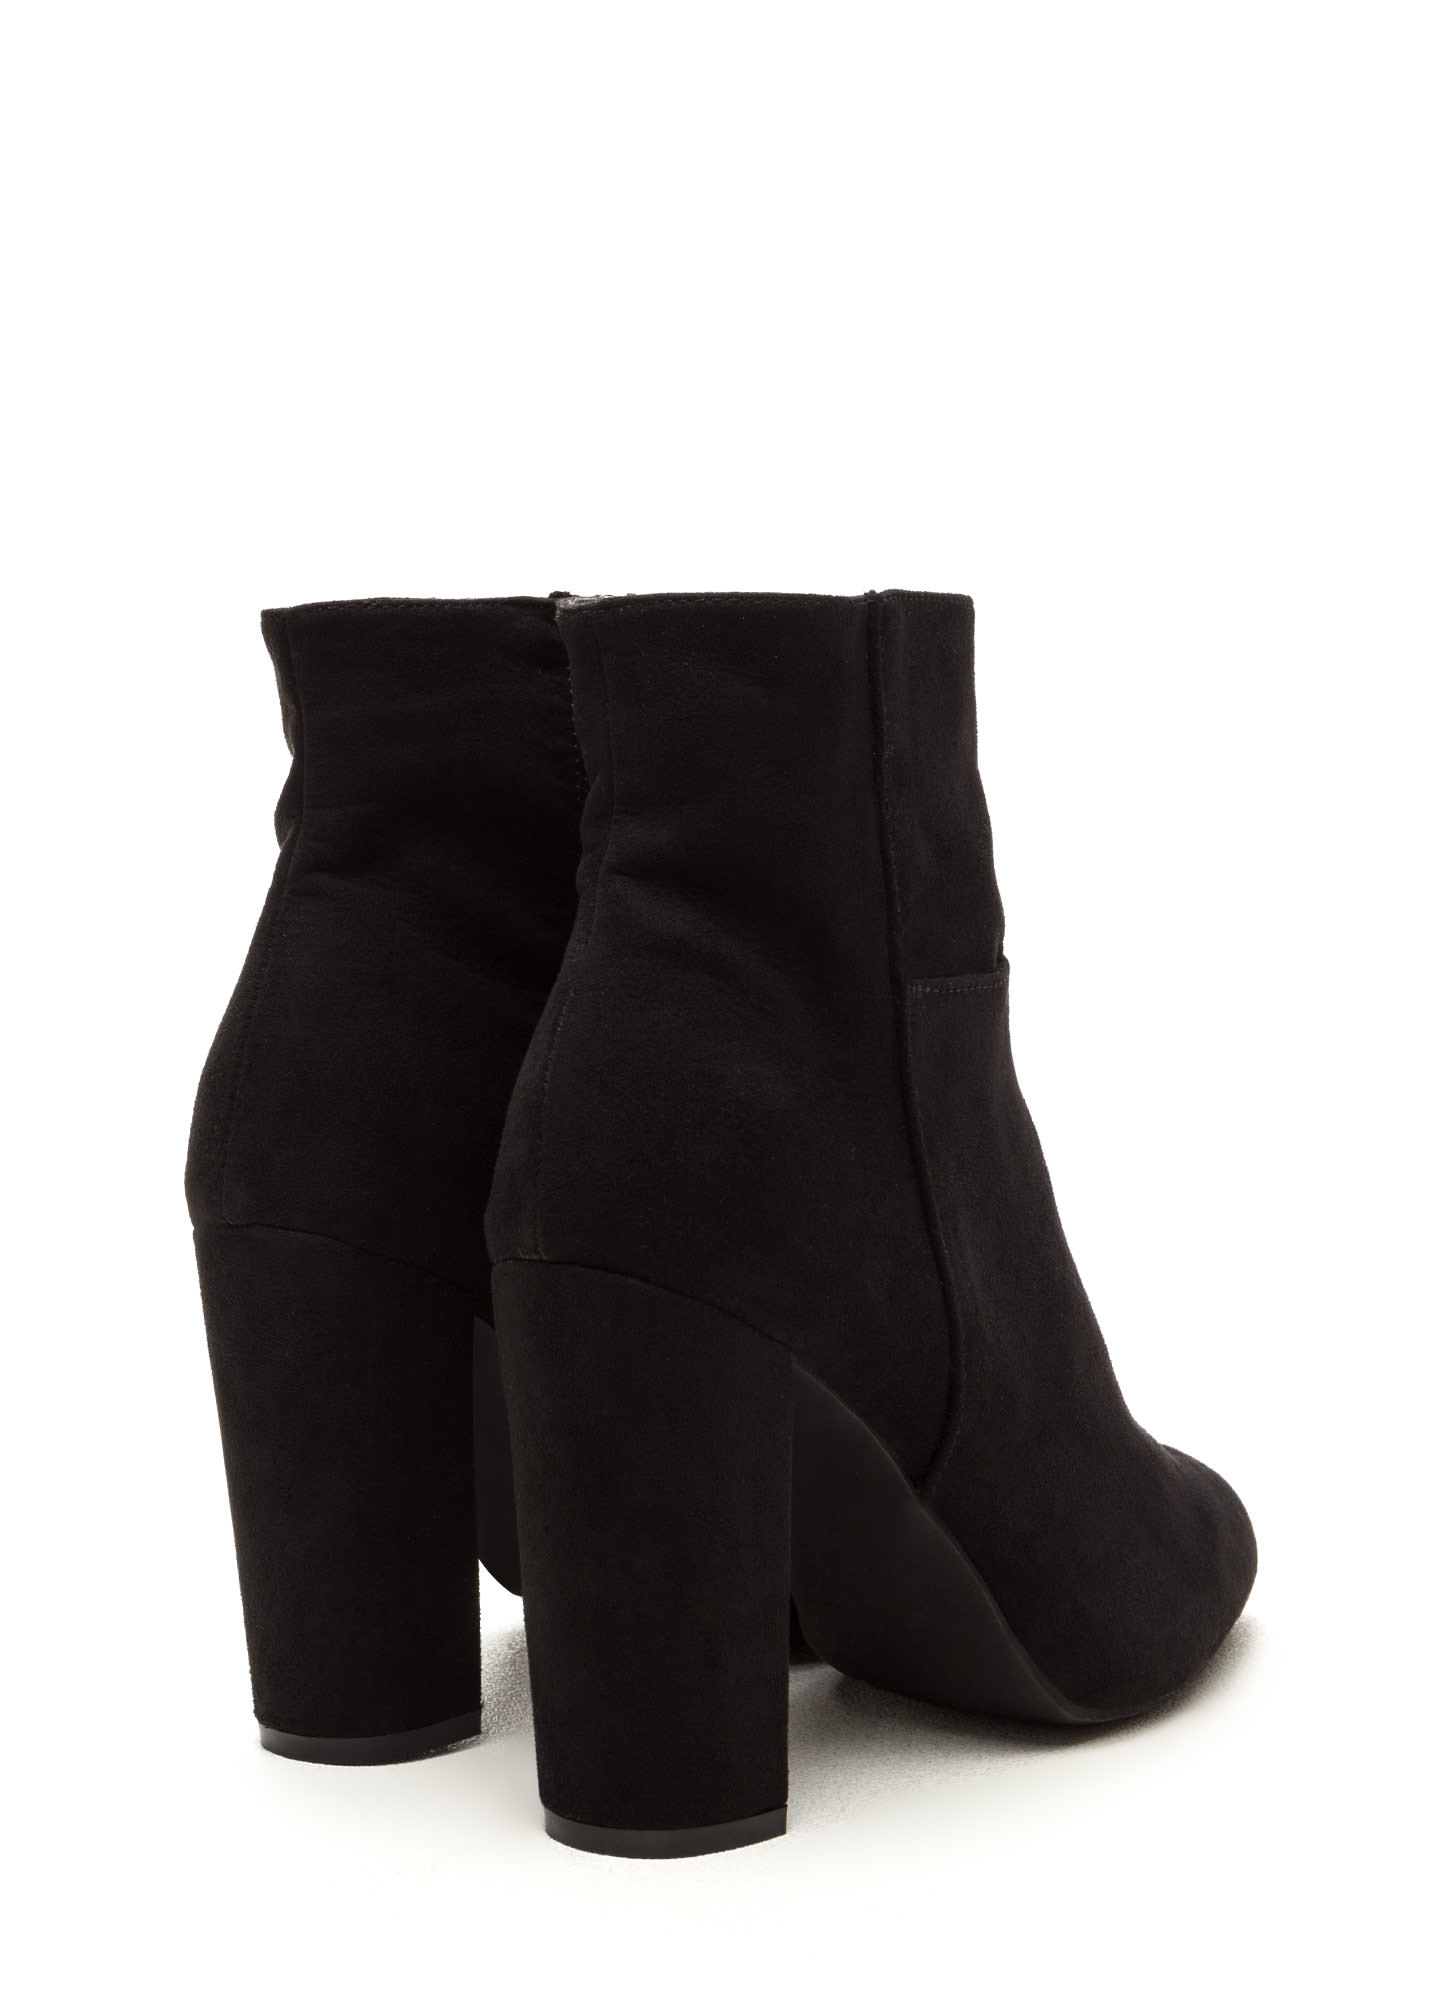 High Standards Faux Suede Booties BLACK